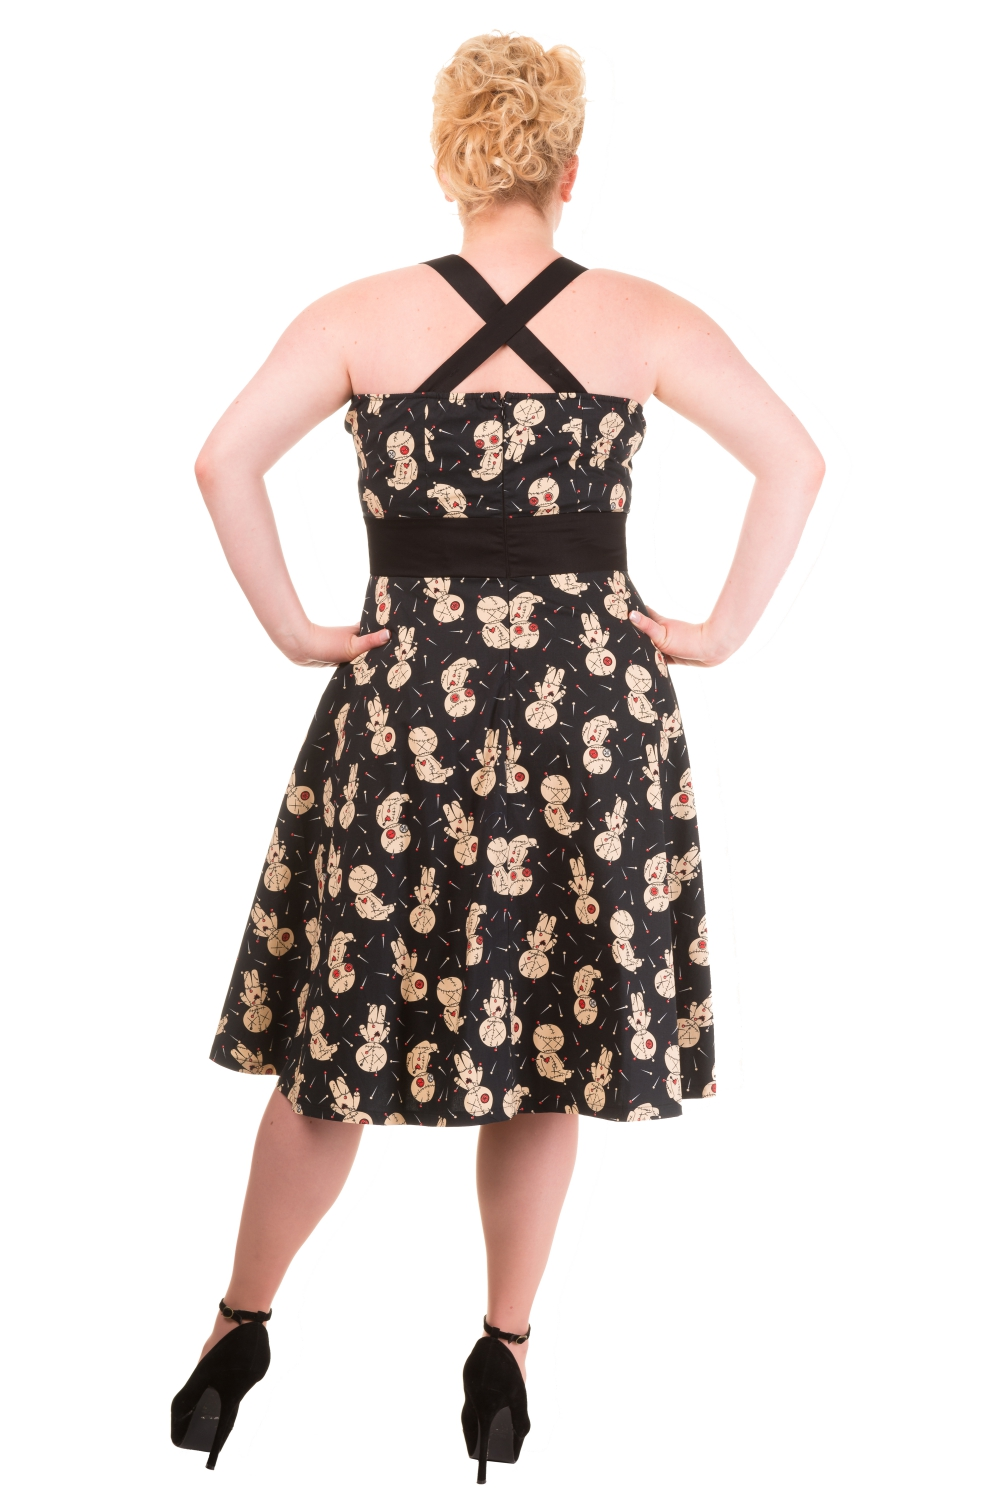 Banned Distractions Dress